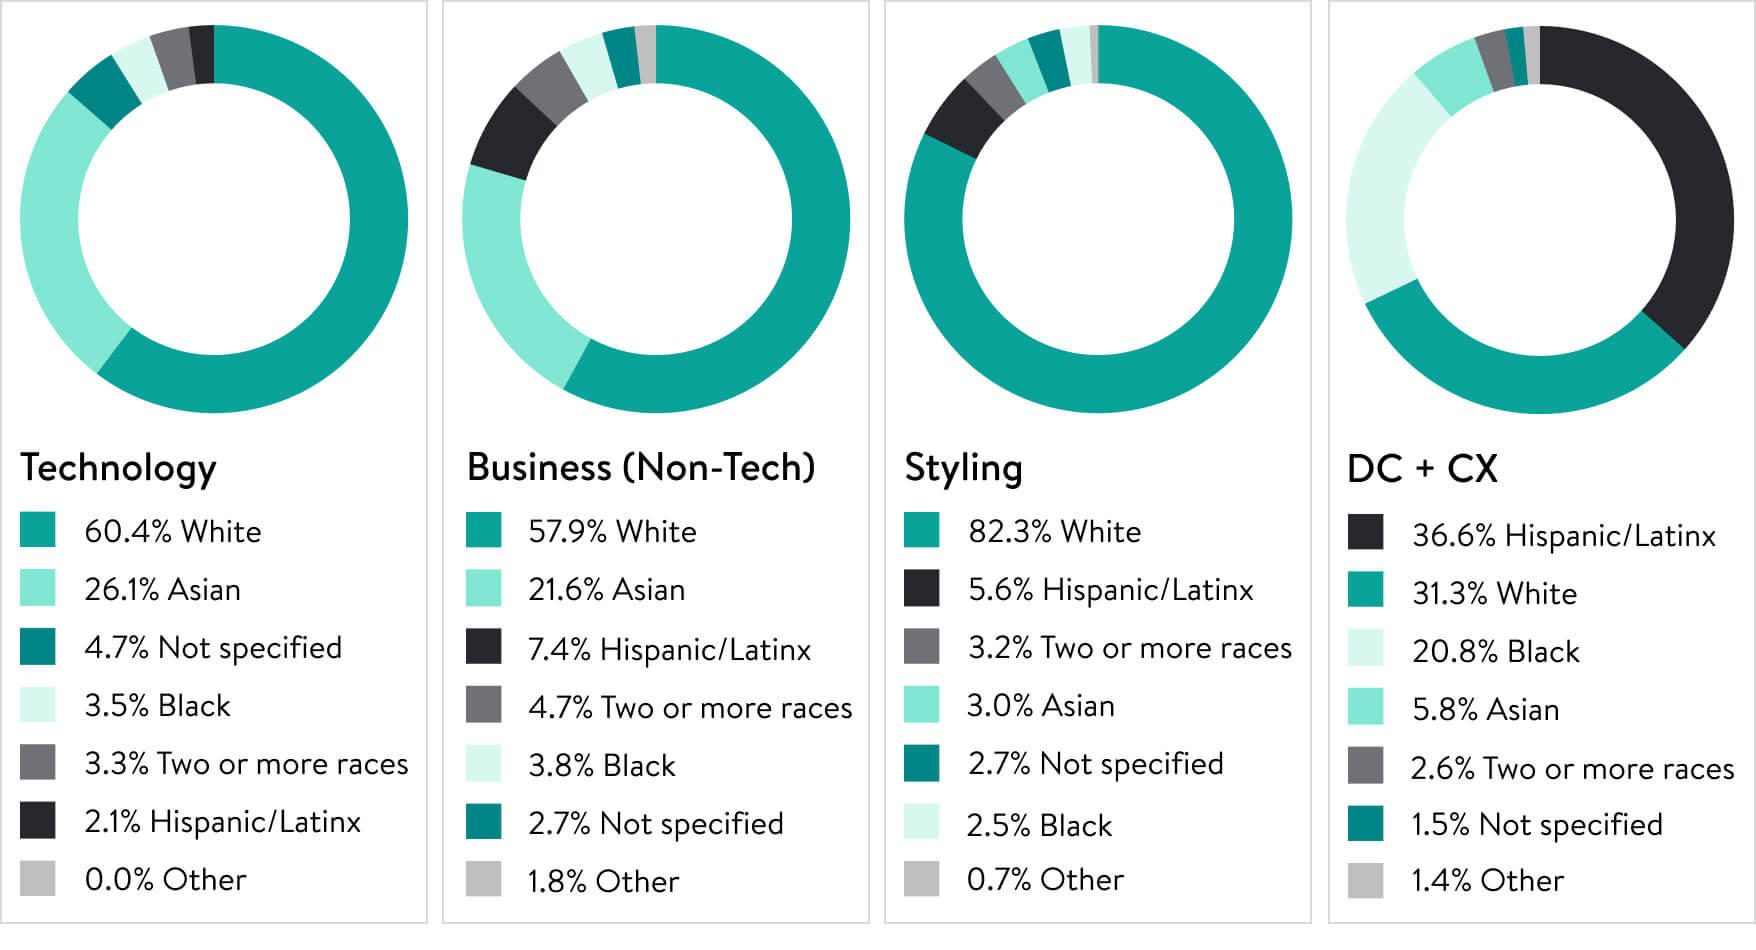 Four pie charts, displaying Racial/Ethnic Representation in Technology, Business (non-Tech), Styling, and Distribution Centers + Customer Experience